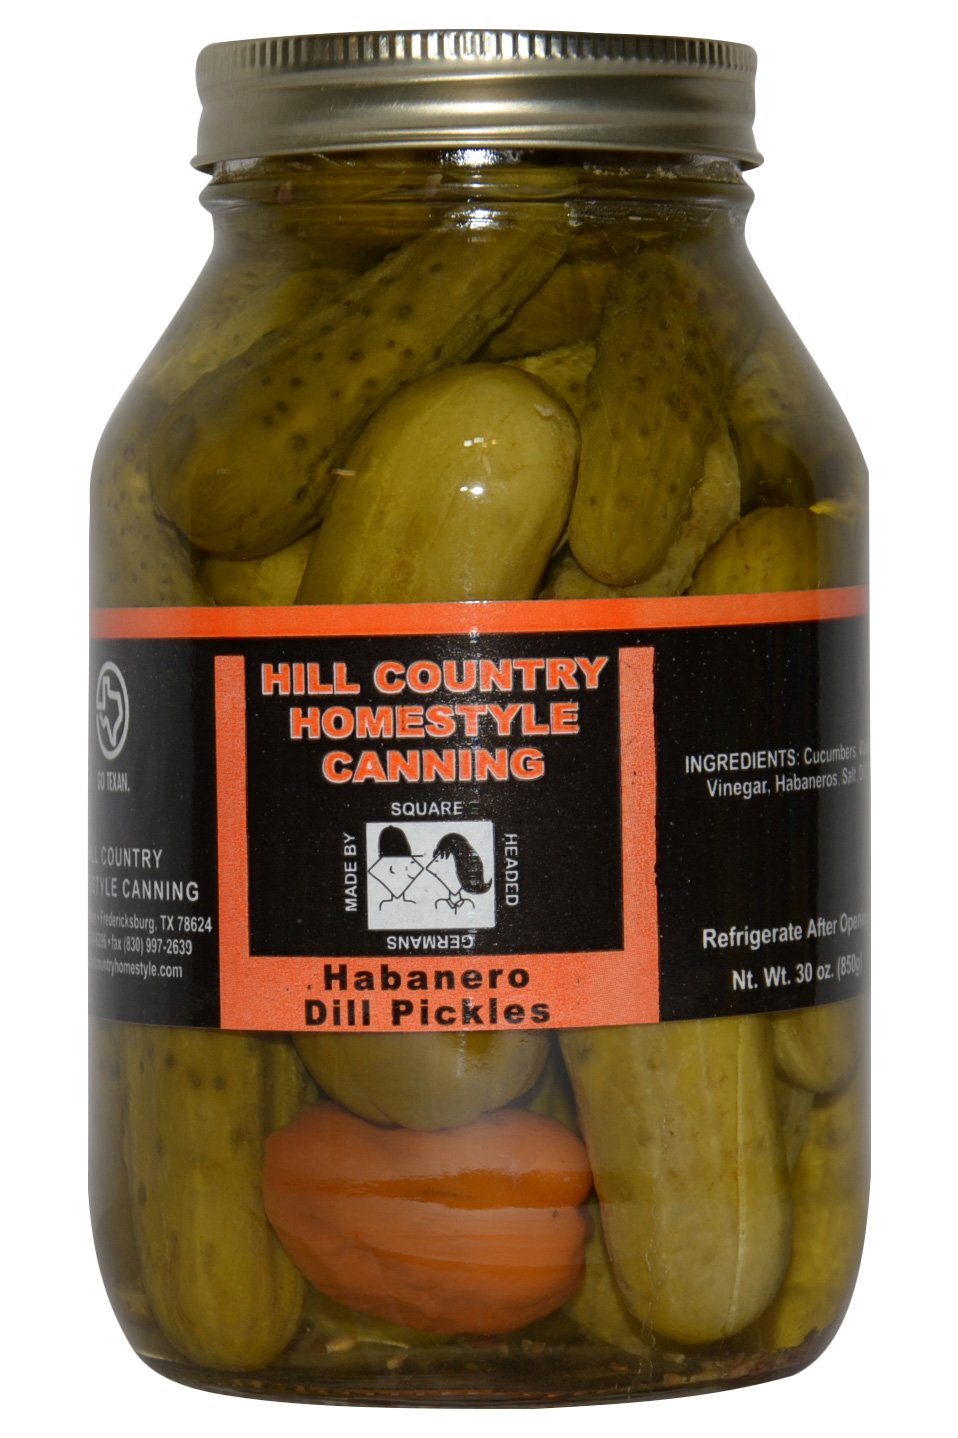 Texas Hill Country Habanero Dill Pickles 32 oz